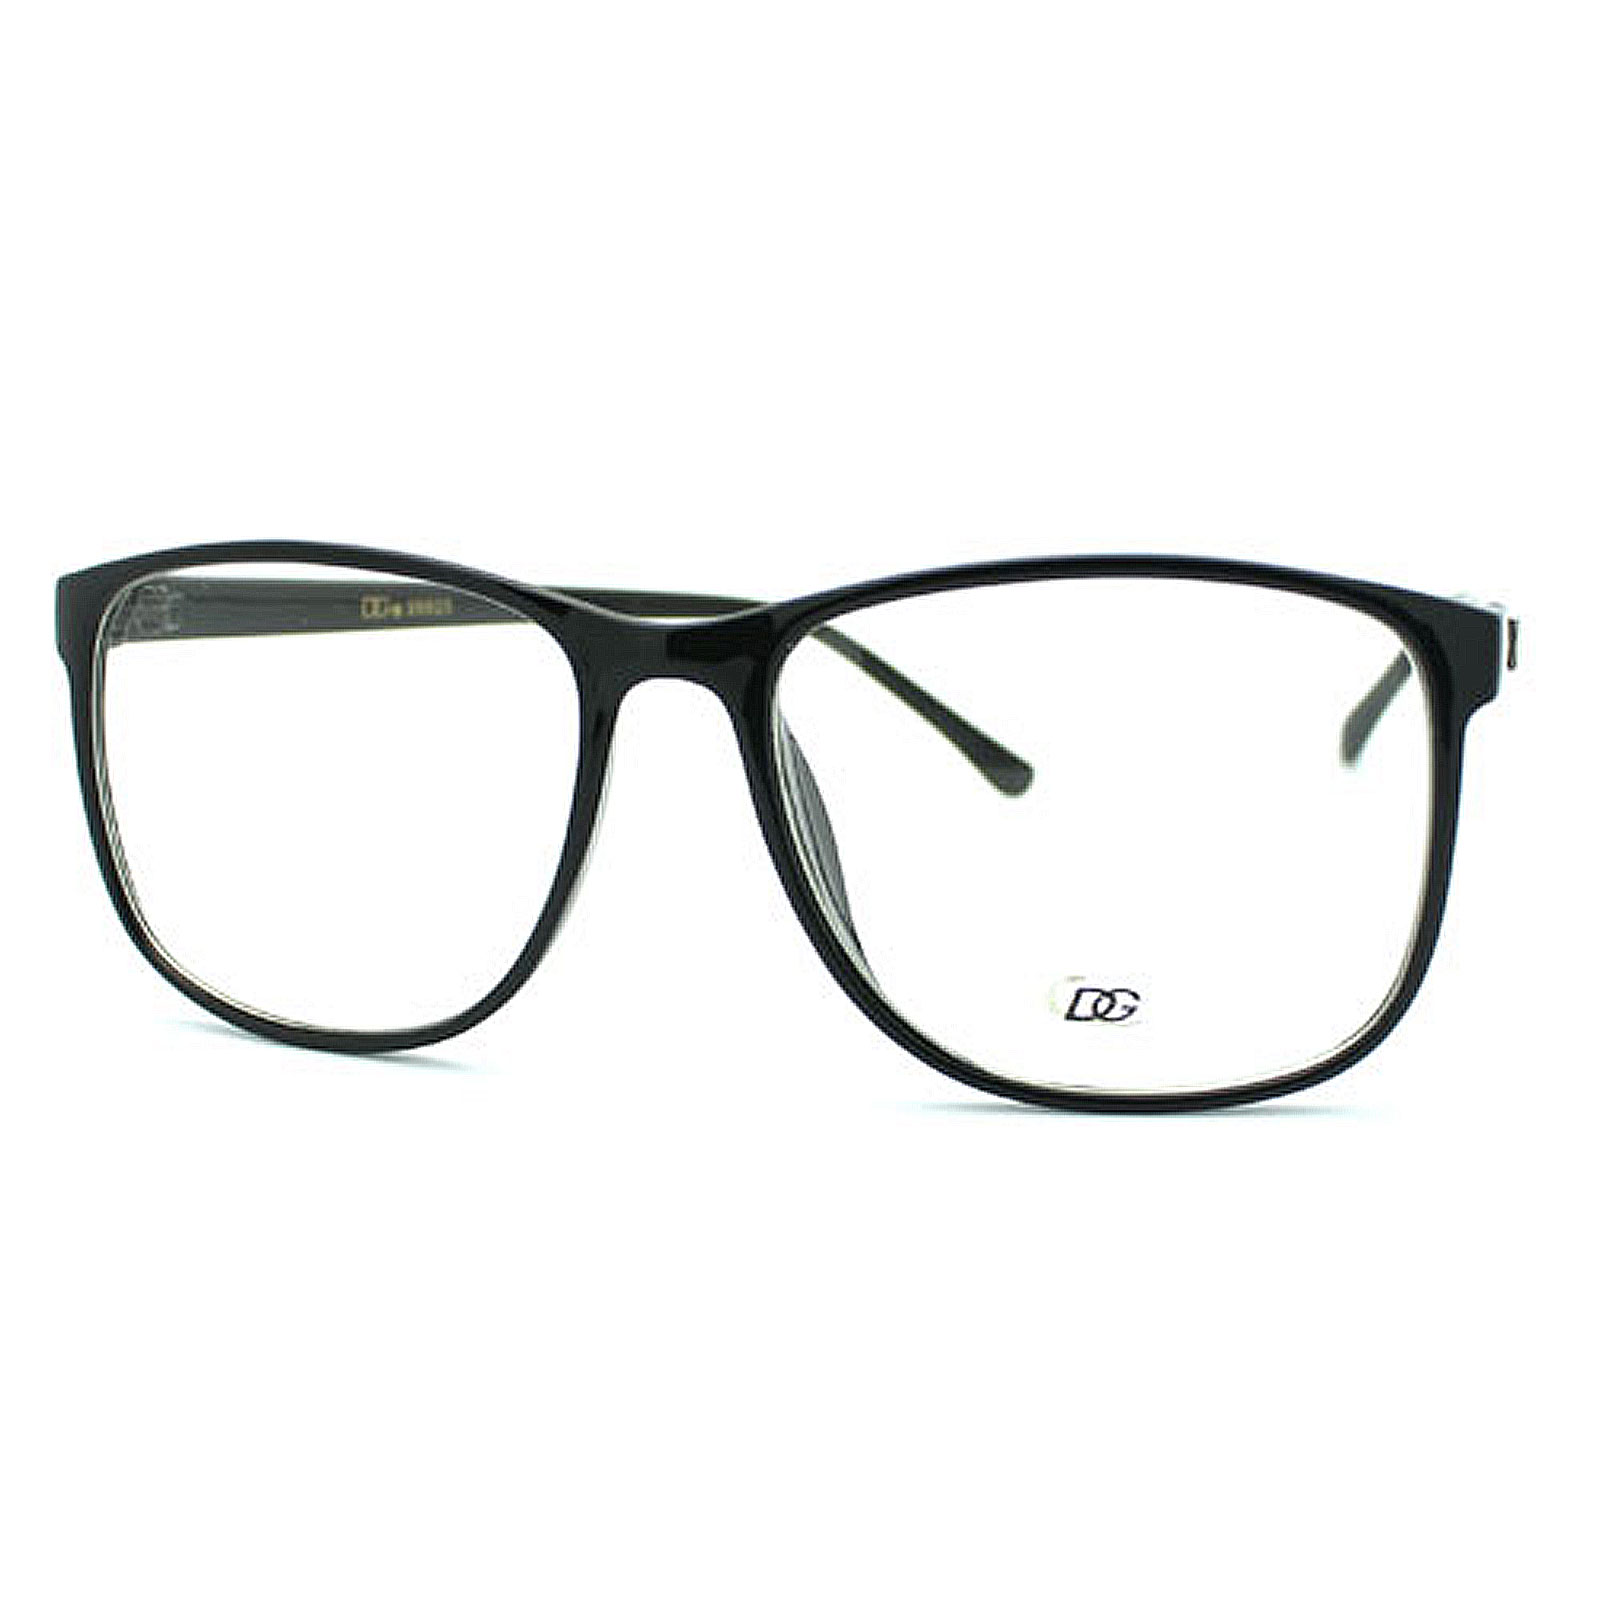 New Nerd Fashion Eye Glasses Clear Lens 2-Tone Black ...